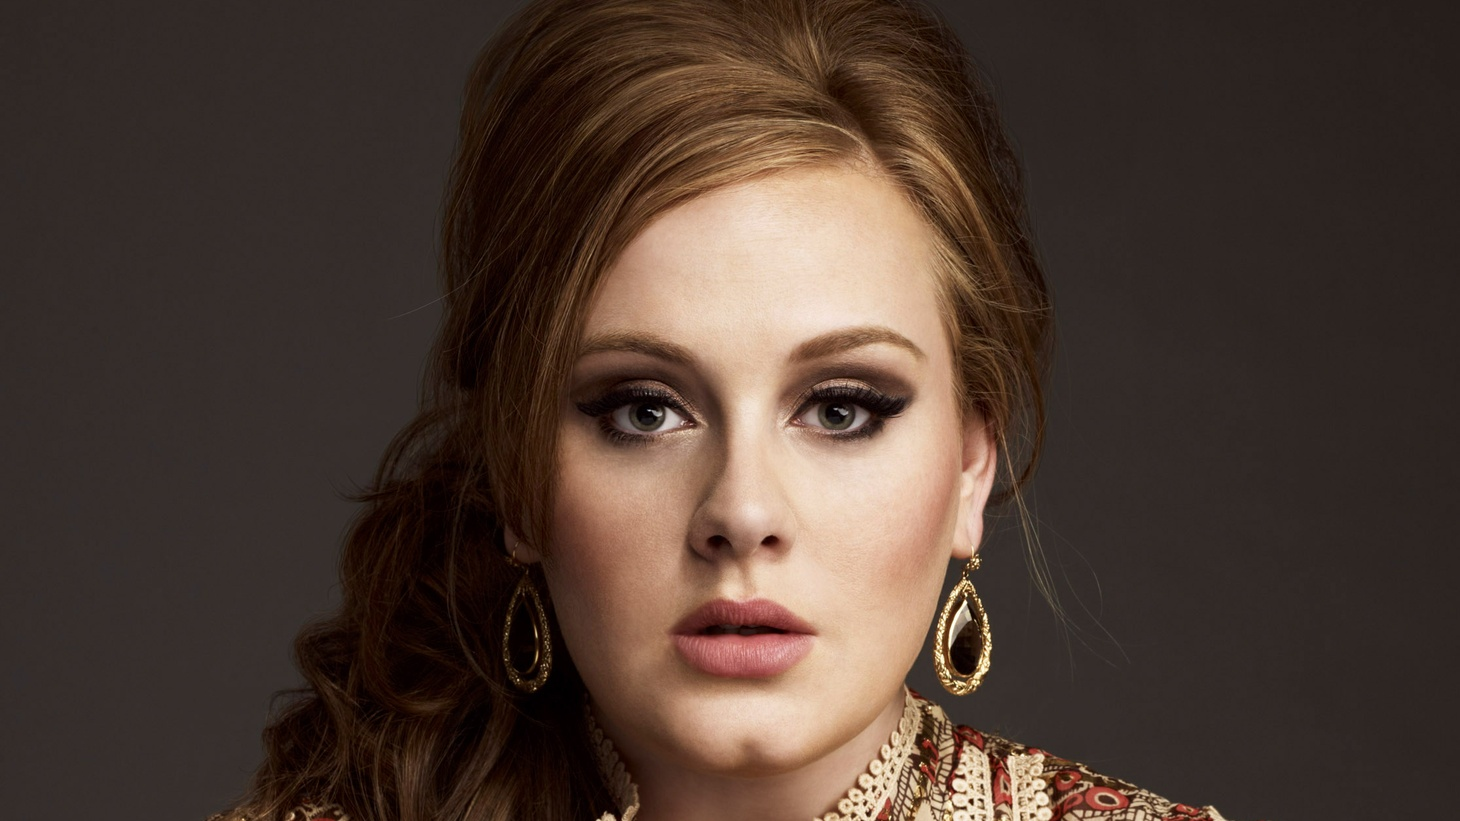 Adele's sophomore release 21catapulted her to stardom. She visited our studio for a special session.